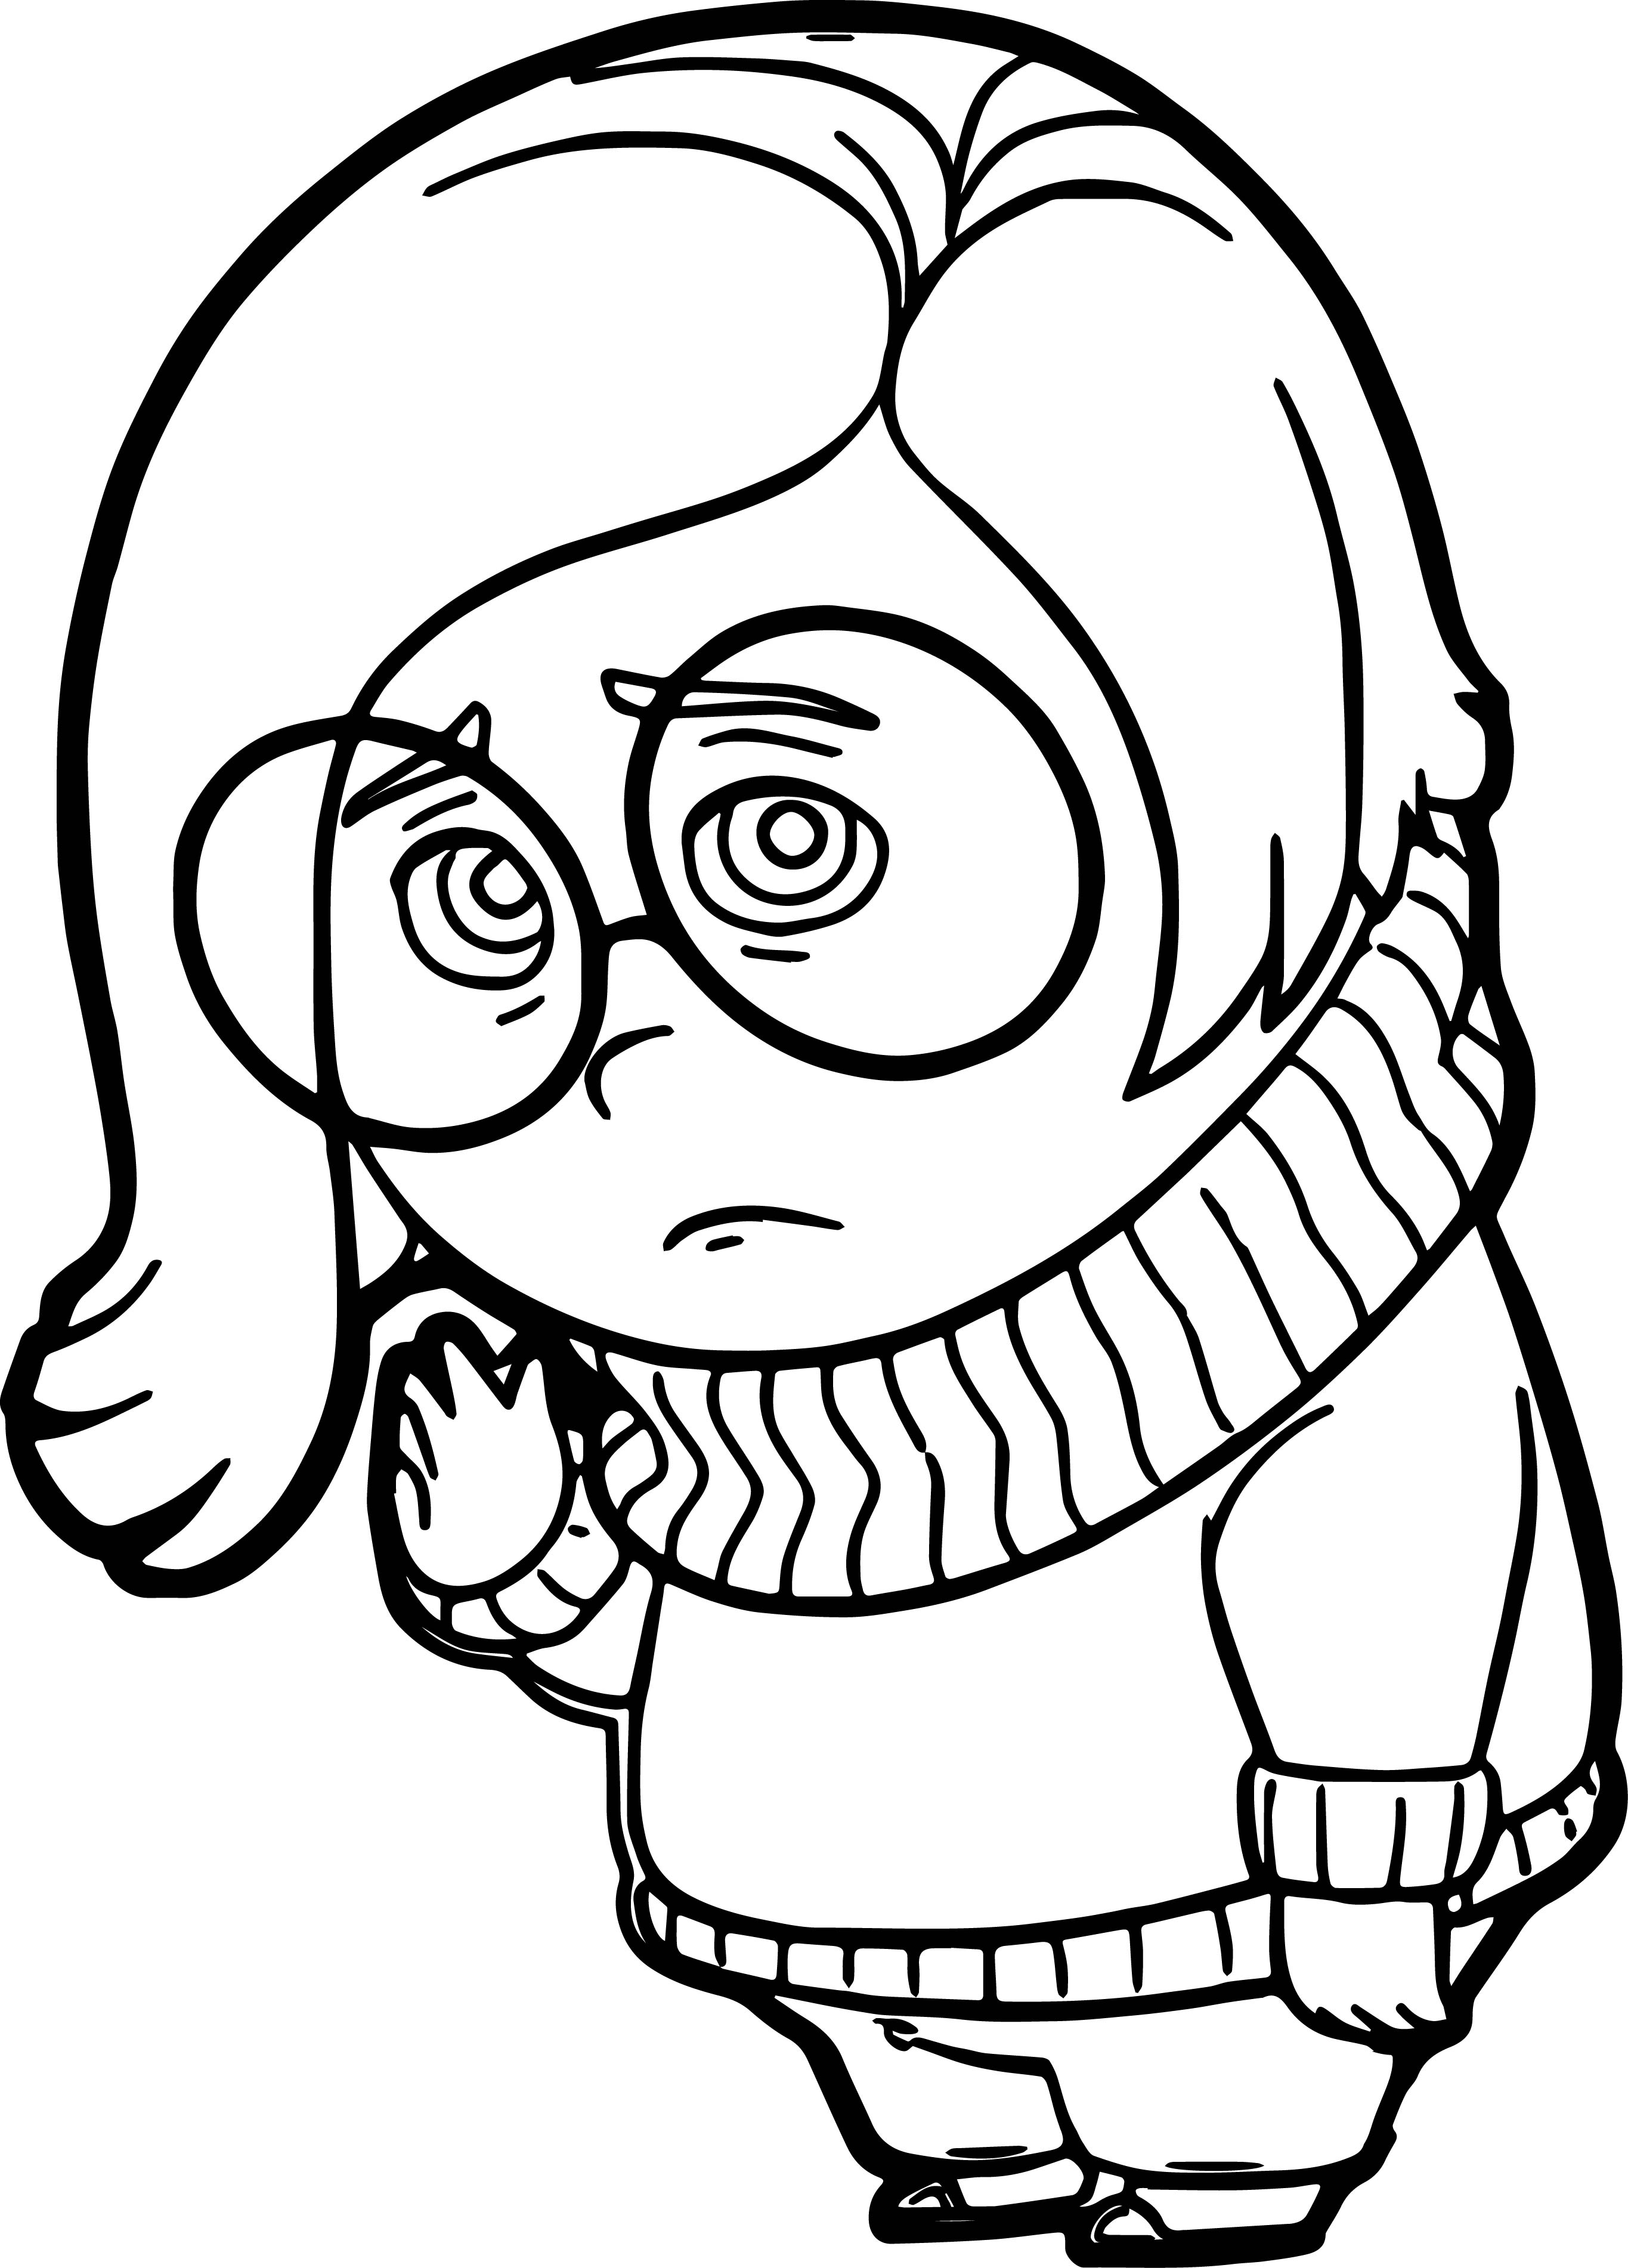 Sadness 4 Coloring Pages